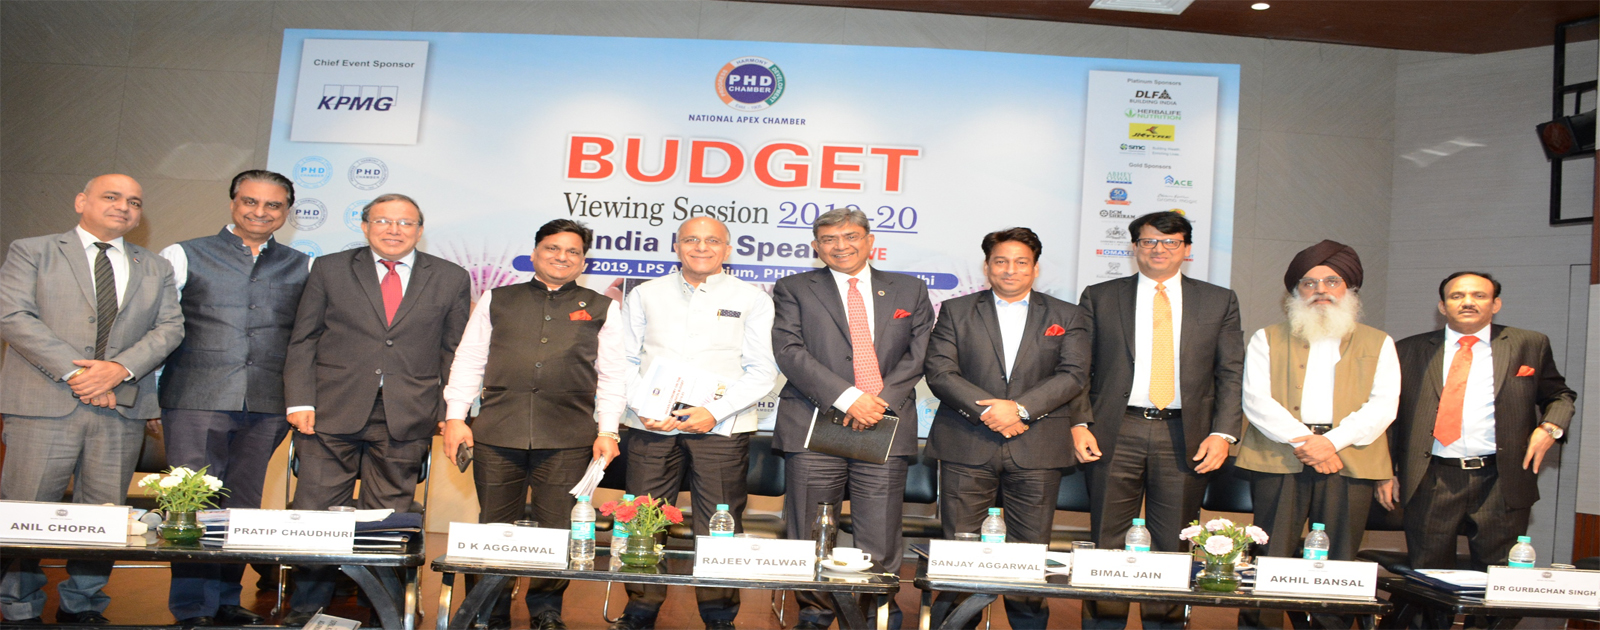 Budget Viewing Session 2019-20